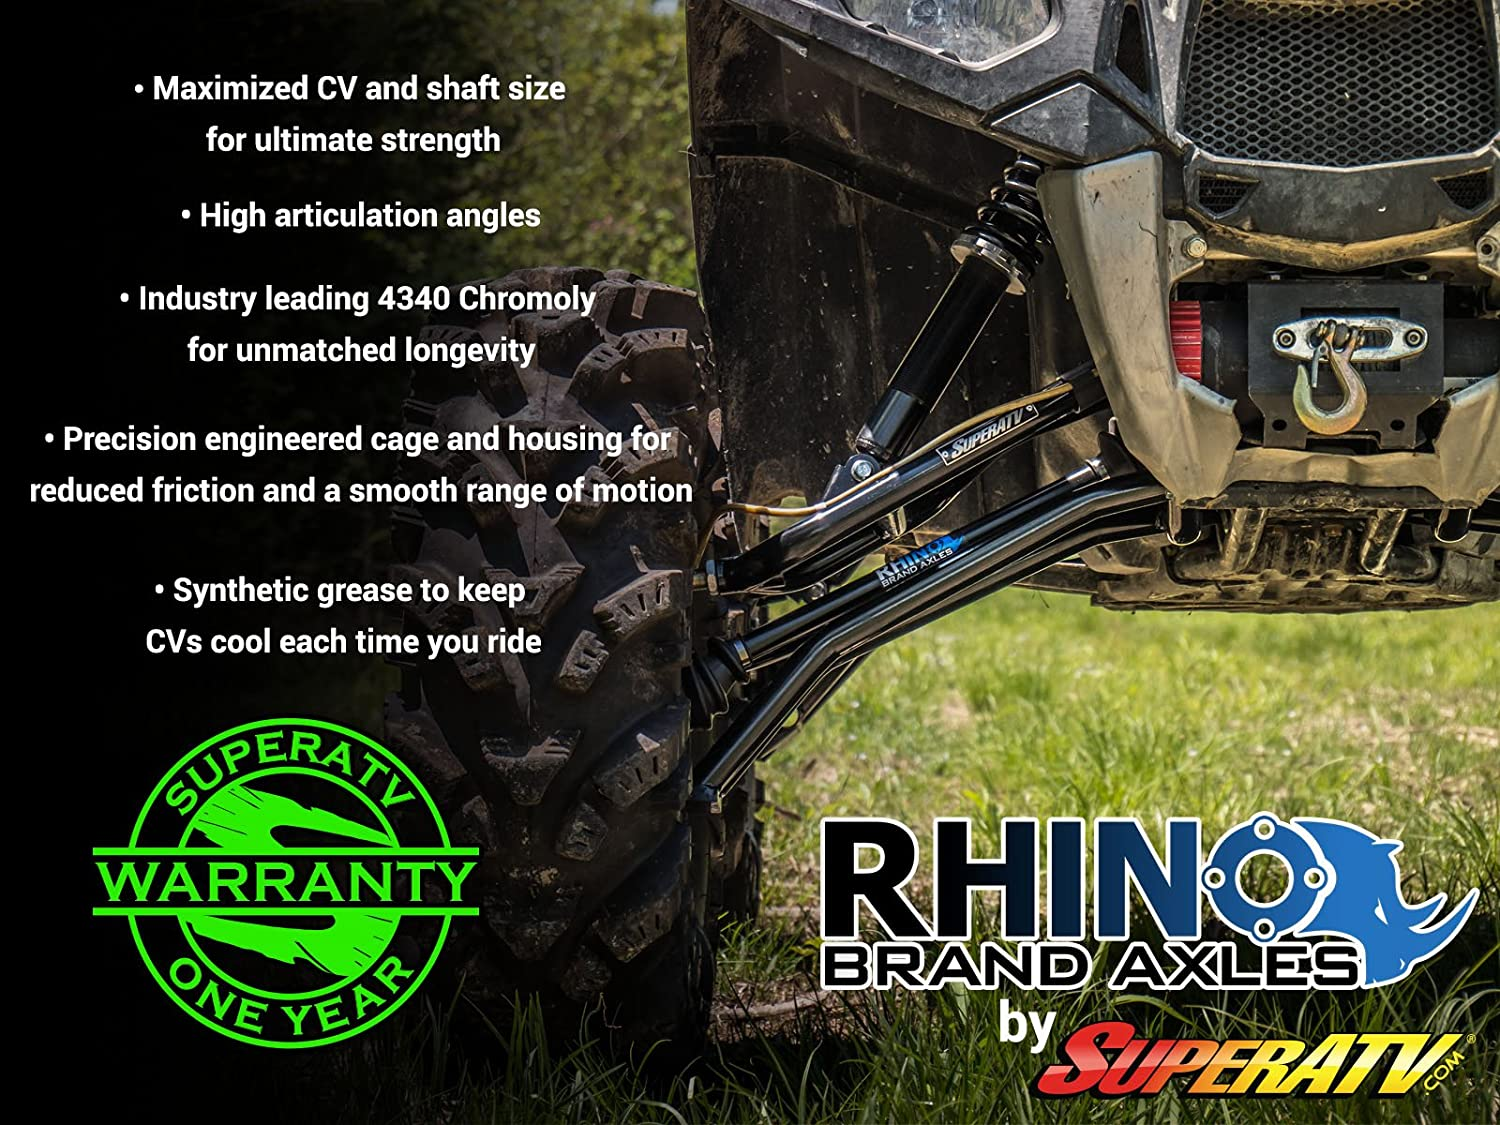 2008-2014 SuperATV Heavy Duty Rhino Brand Front Axle for Polaris RZR 800 - Stock Length FRONT Axle Upgrade From Your OEM Axle!